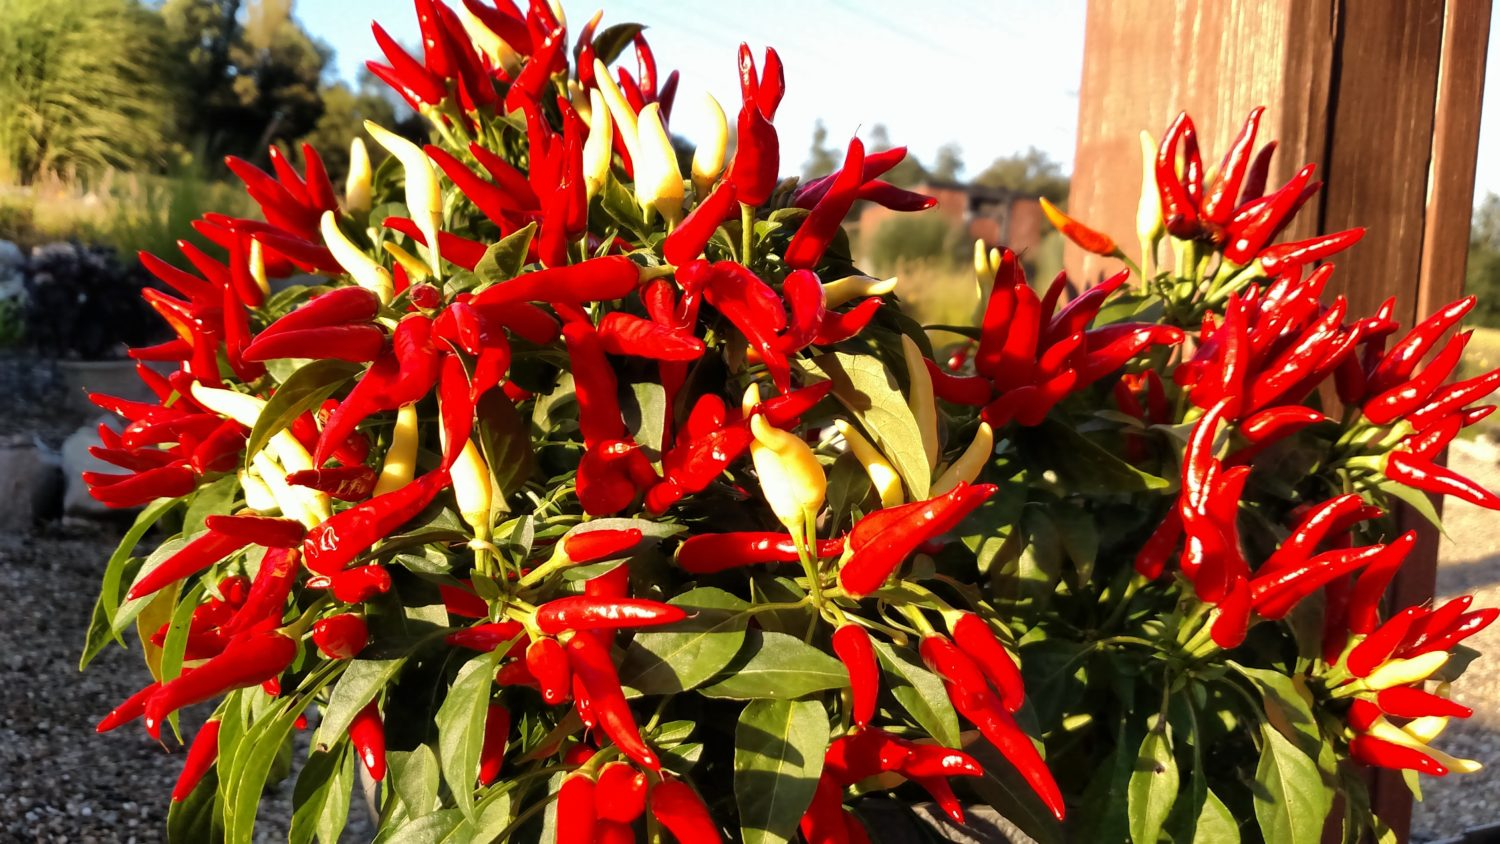 Growing Ornamental Peppers